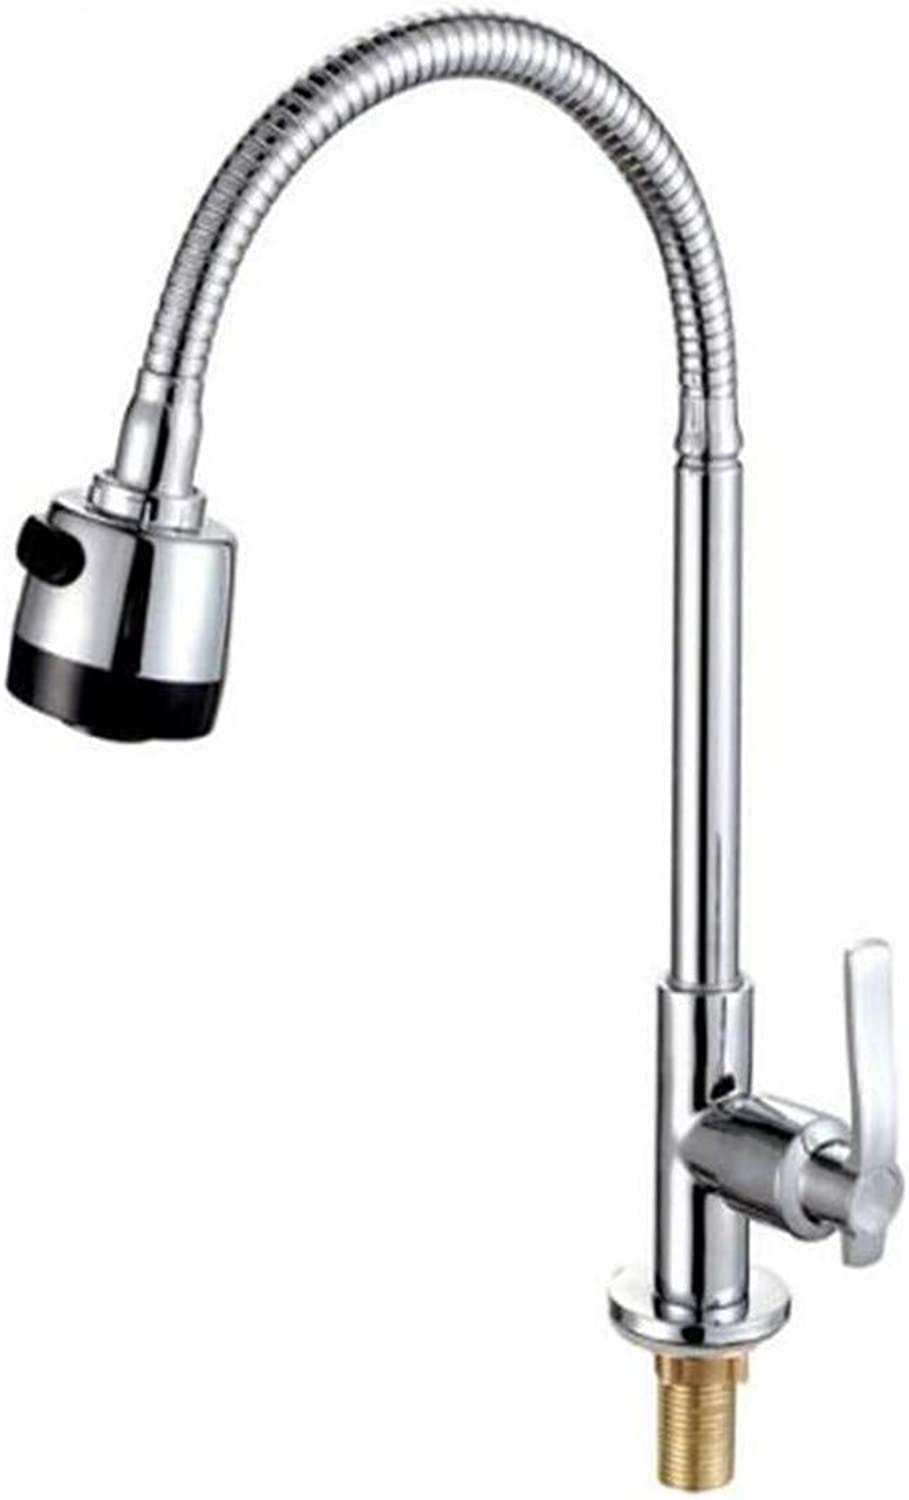 Chrome Kitchen Sink Taptaps Mixer Swivel Faucet Sink Single Cooling Kitchen Faucet Single Cooling Vegetable Washing Pool Faucet Laundry Pool Universal redary Faucet